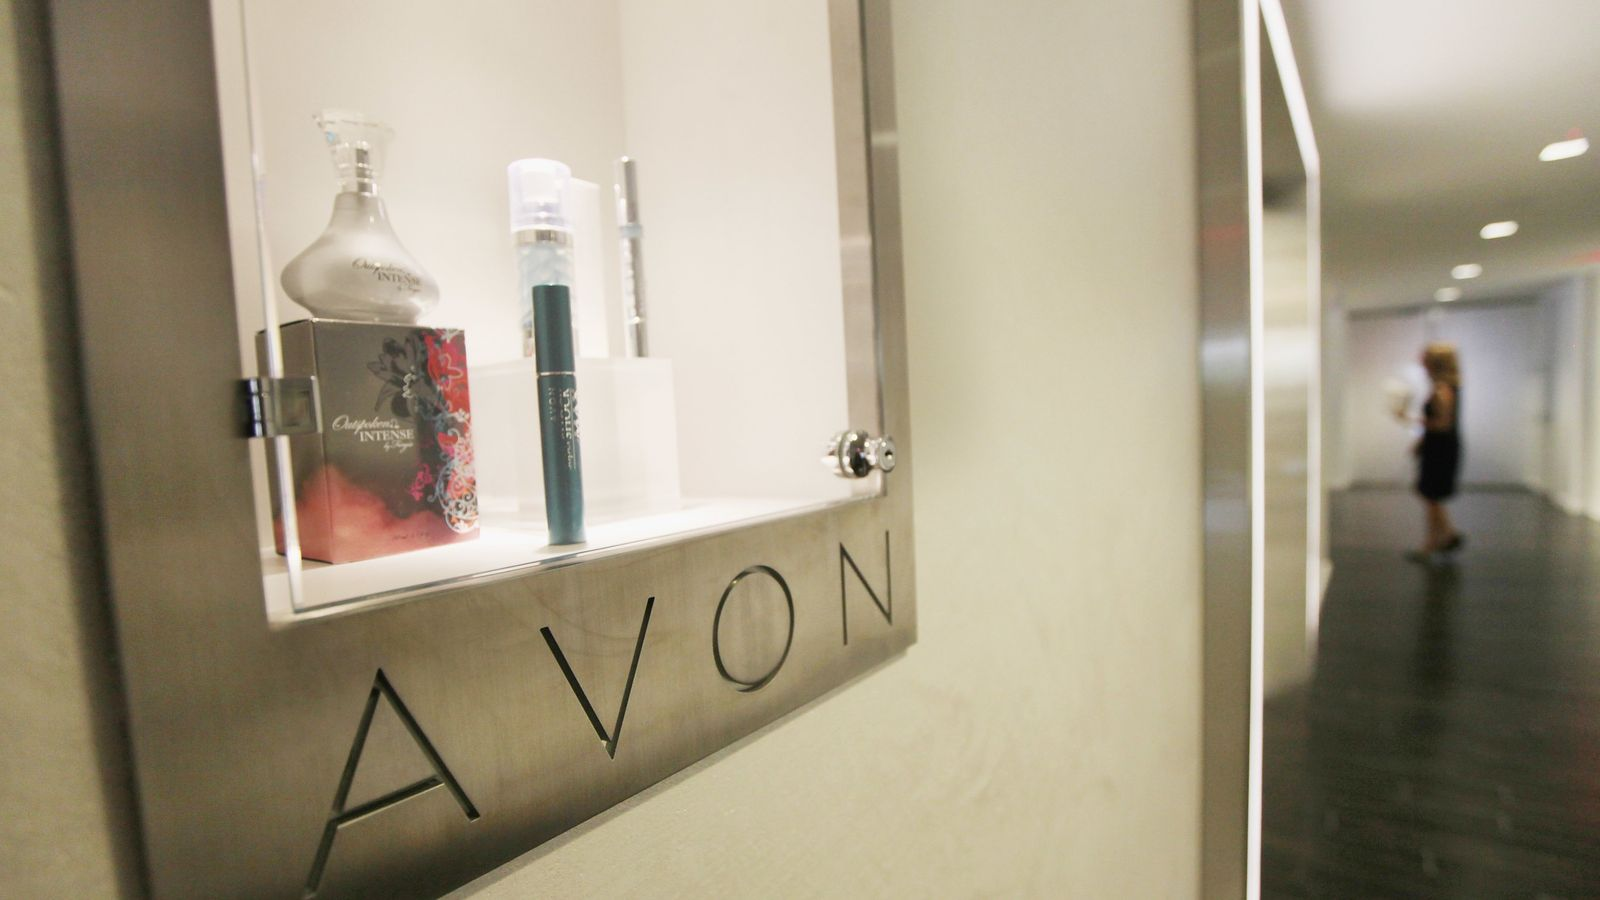 The Body Shop owner snaps up Avon in £1.6bn deal